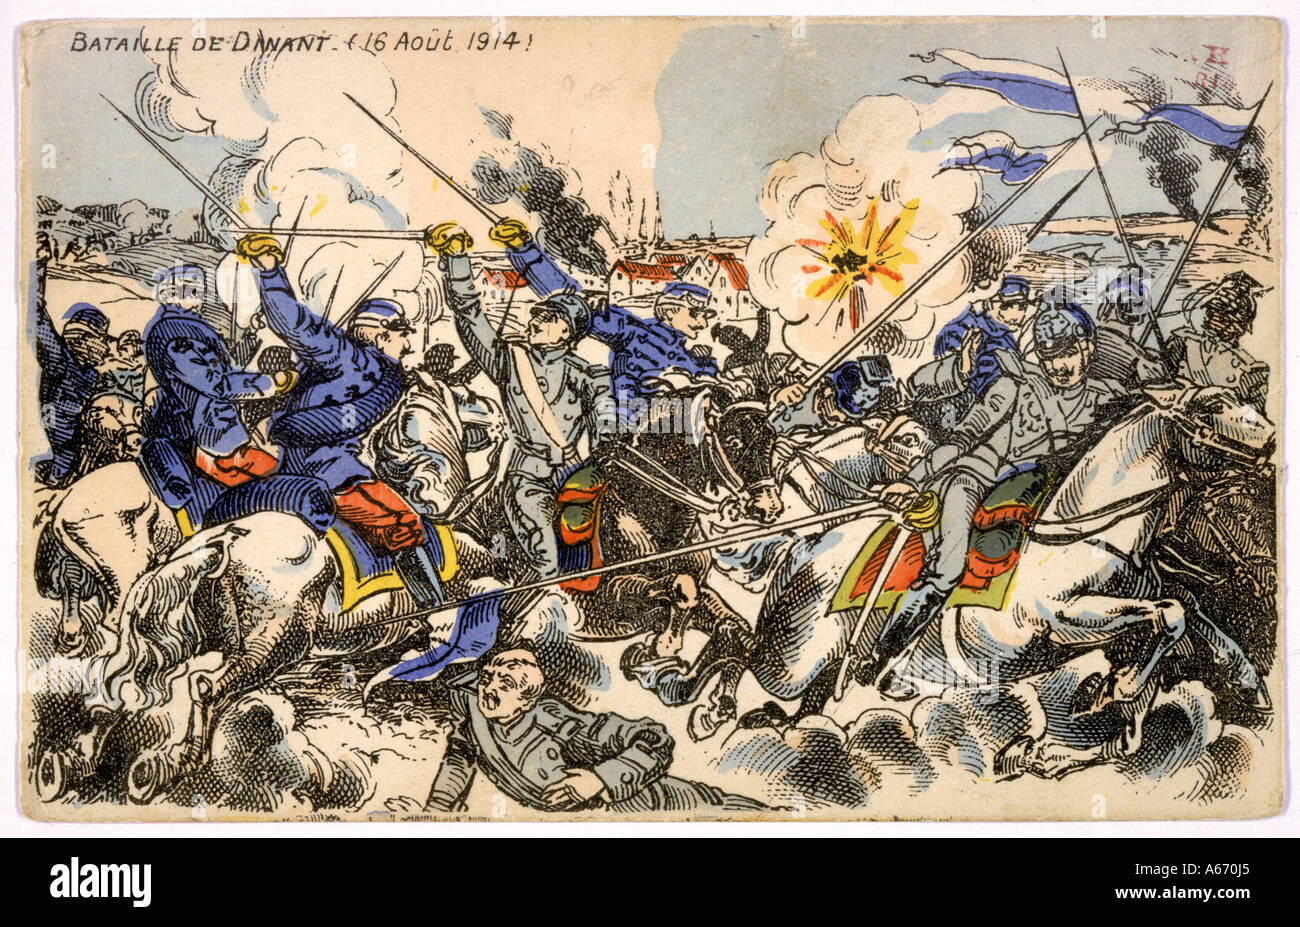 Fighting At Dinant 1914 - Stock Image